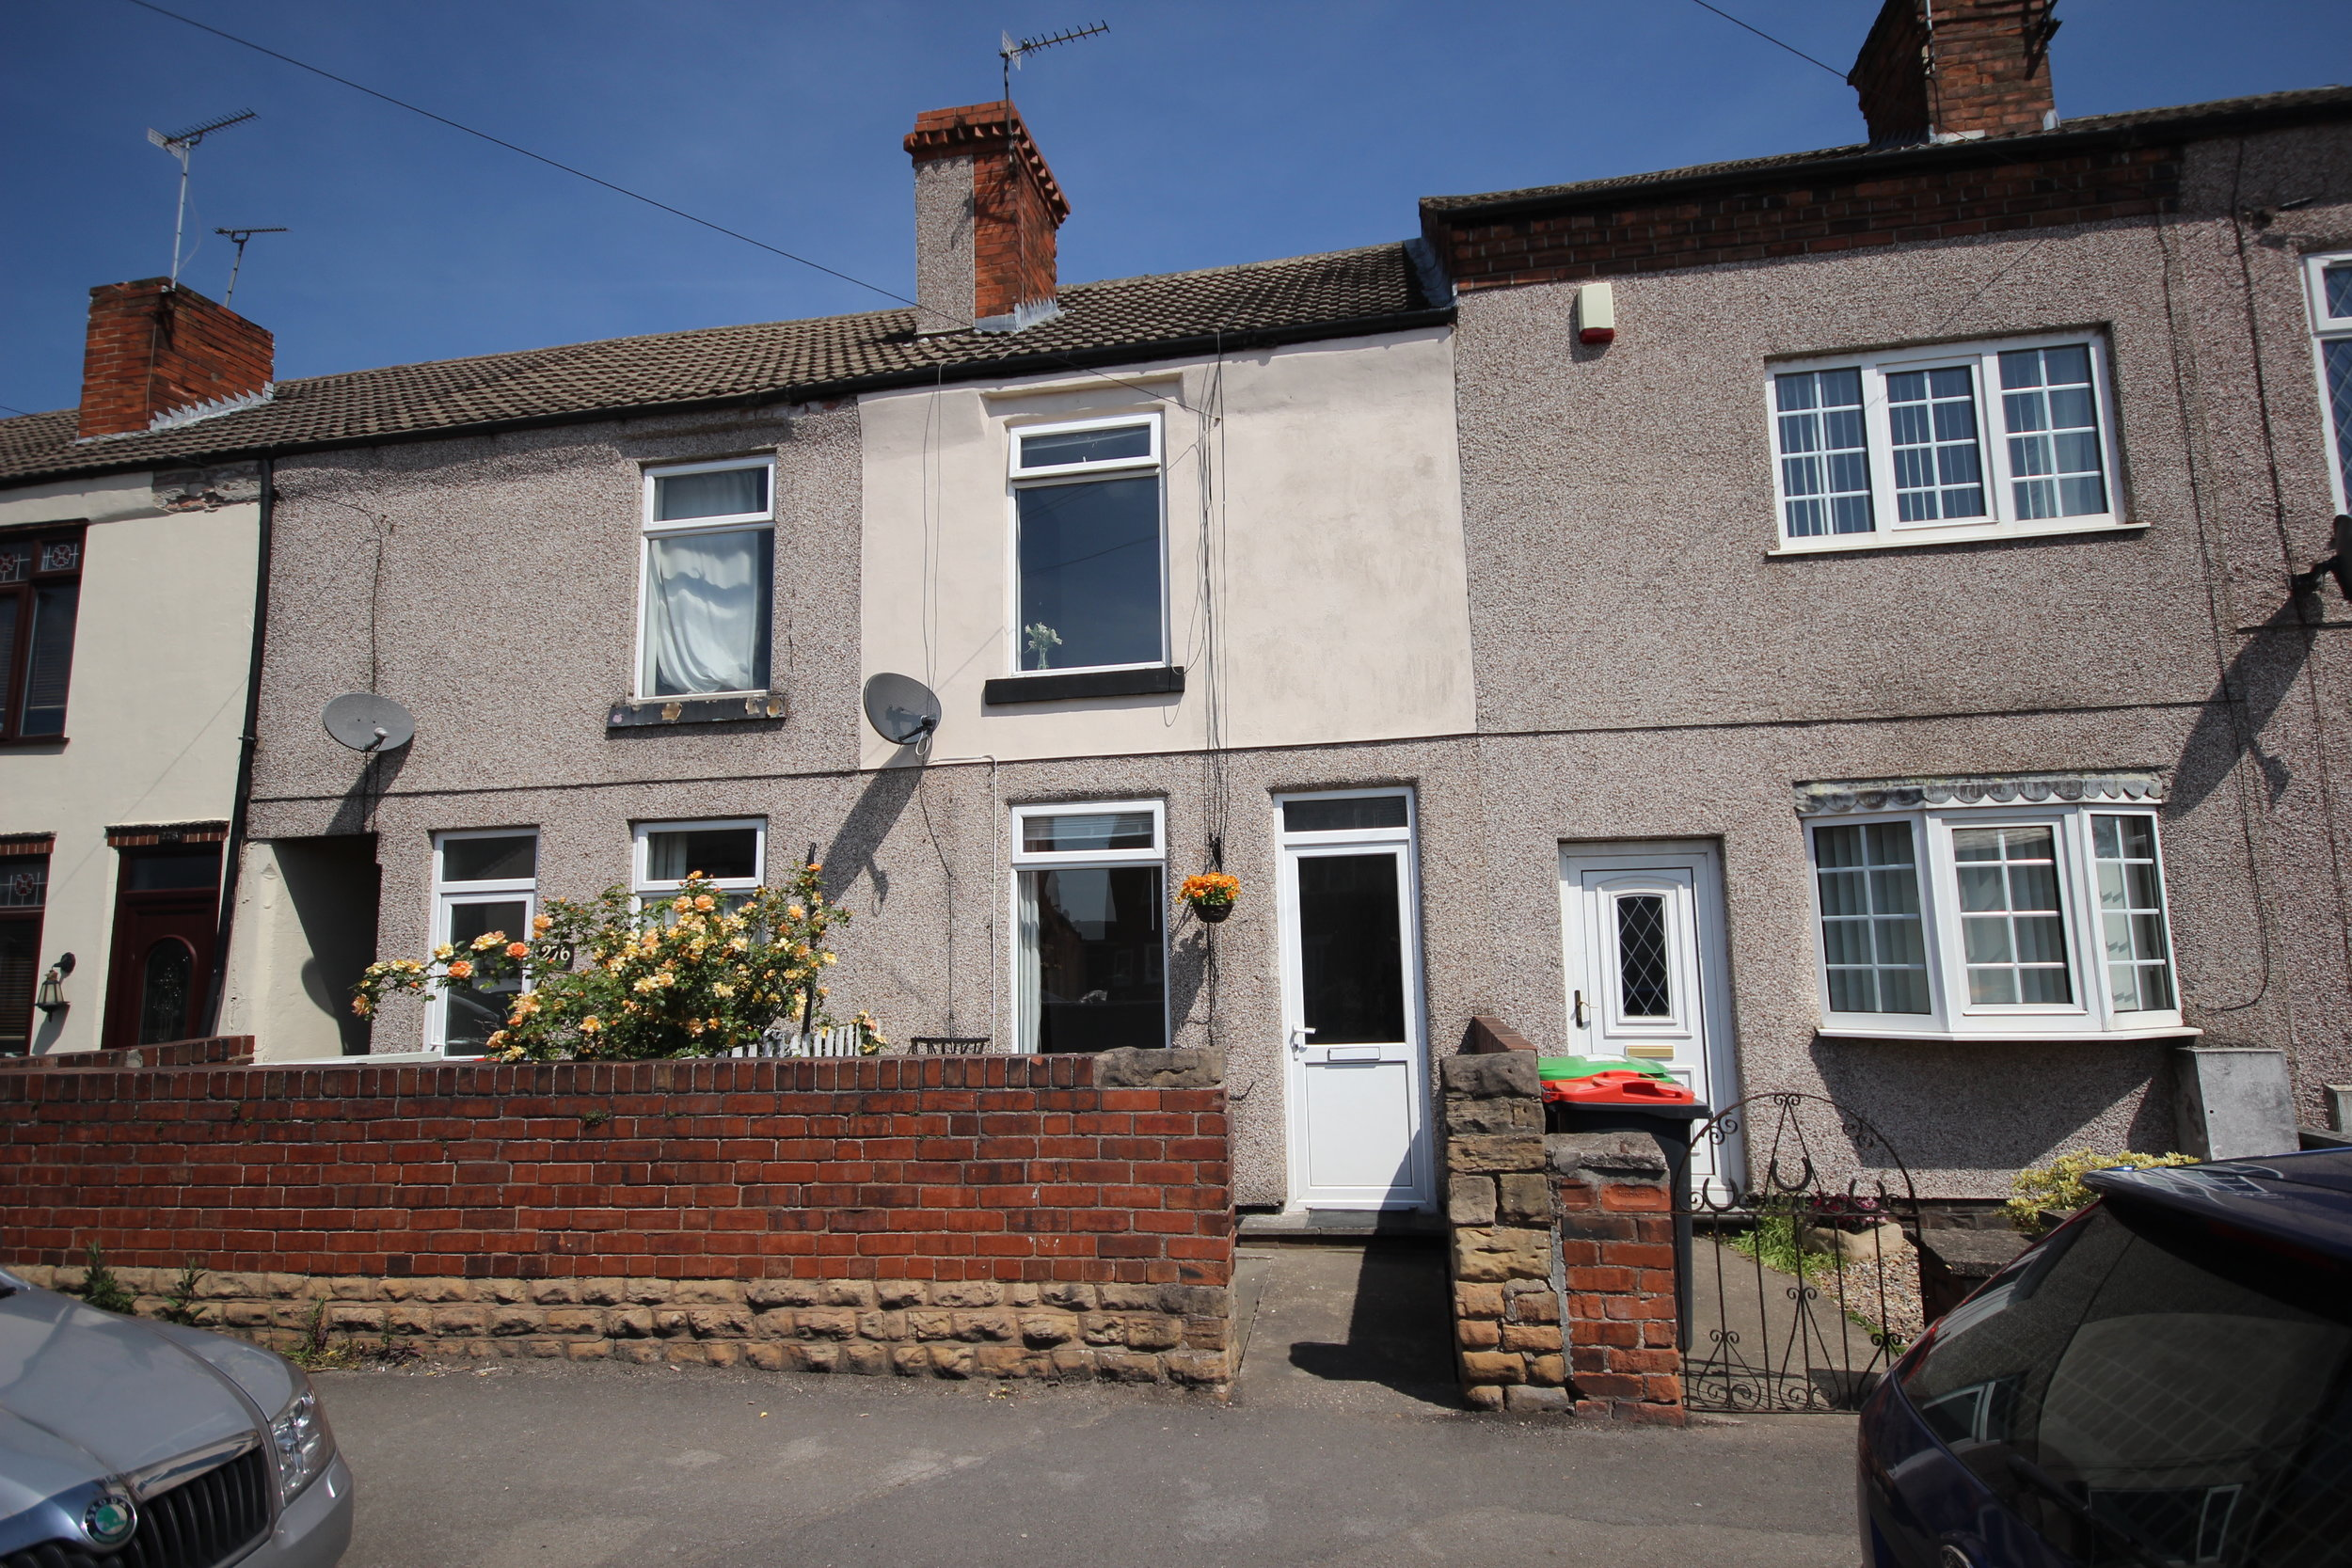 IT'S GONE! £450pcm Alfreton Road, Jubilee, Derbys, DE55 4PB - This beautifully presented property provides a lounge, dining kitchen, ground floor bathroom and two double bedrooms, plus an enclosed rear garden. EPC rating E.